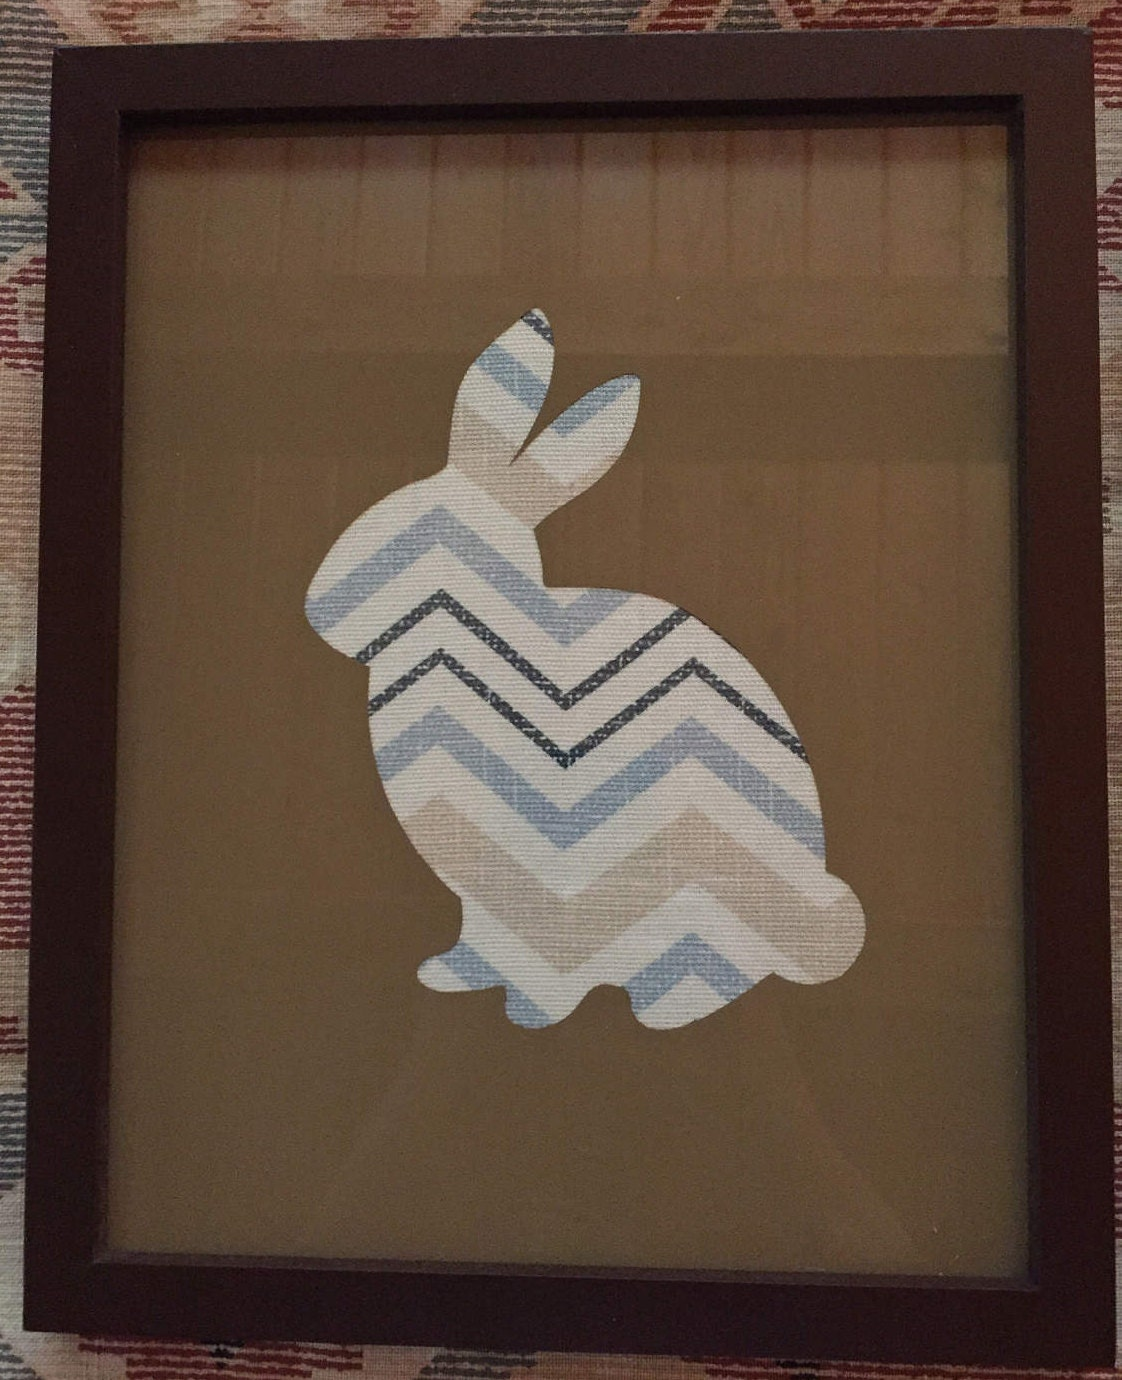 8x10 Brown Frame w/ Bunny Outline and Chevron Fabric Background ...